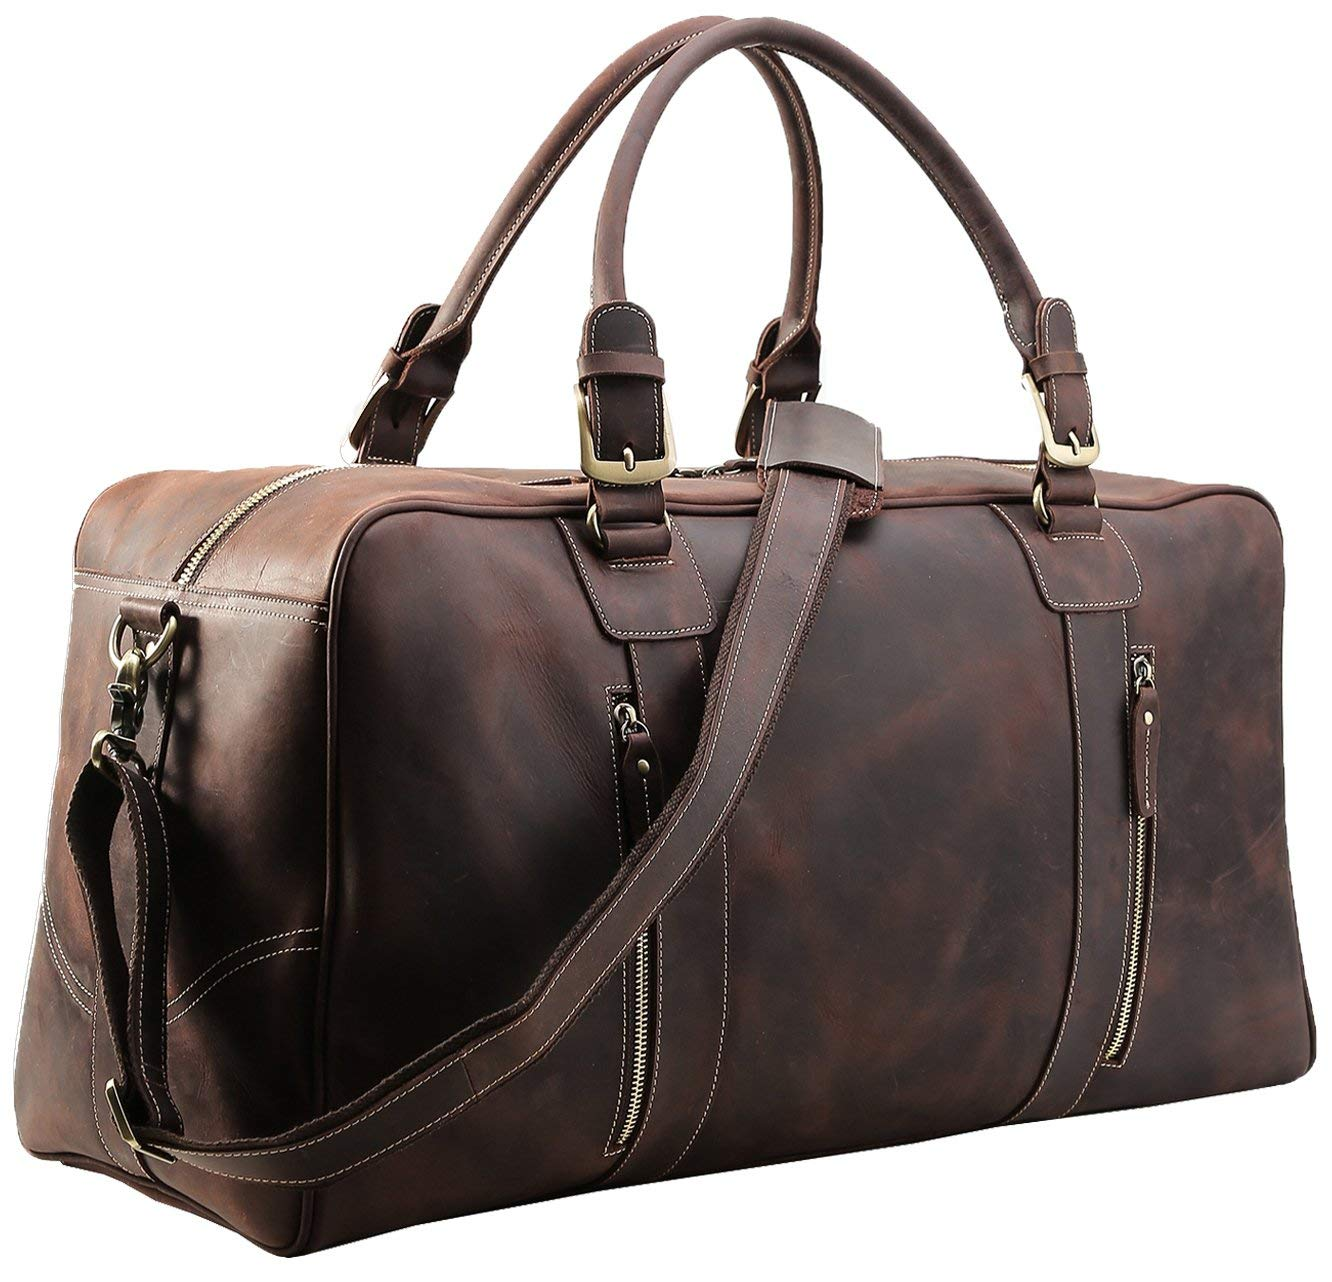 fe0d82d00a04 Get Quotations · Polare Mens Vintage Leather Duffel Overnight Travel Duffle  Weekender Bag (X-large 23.2